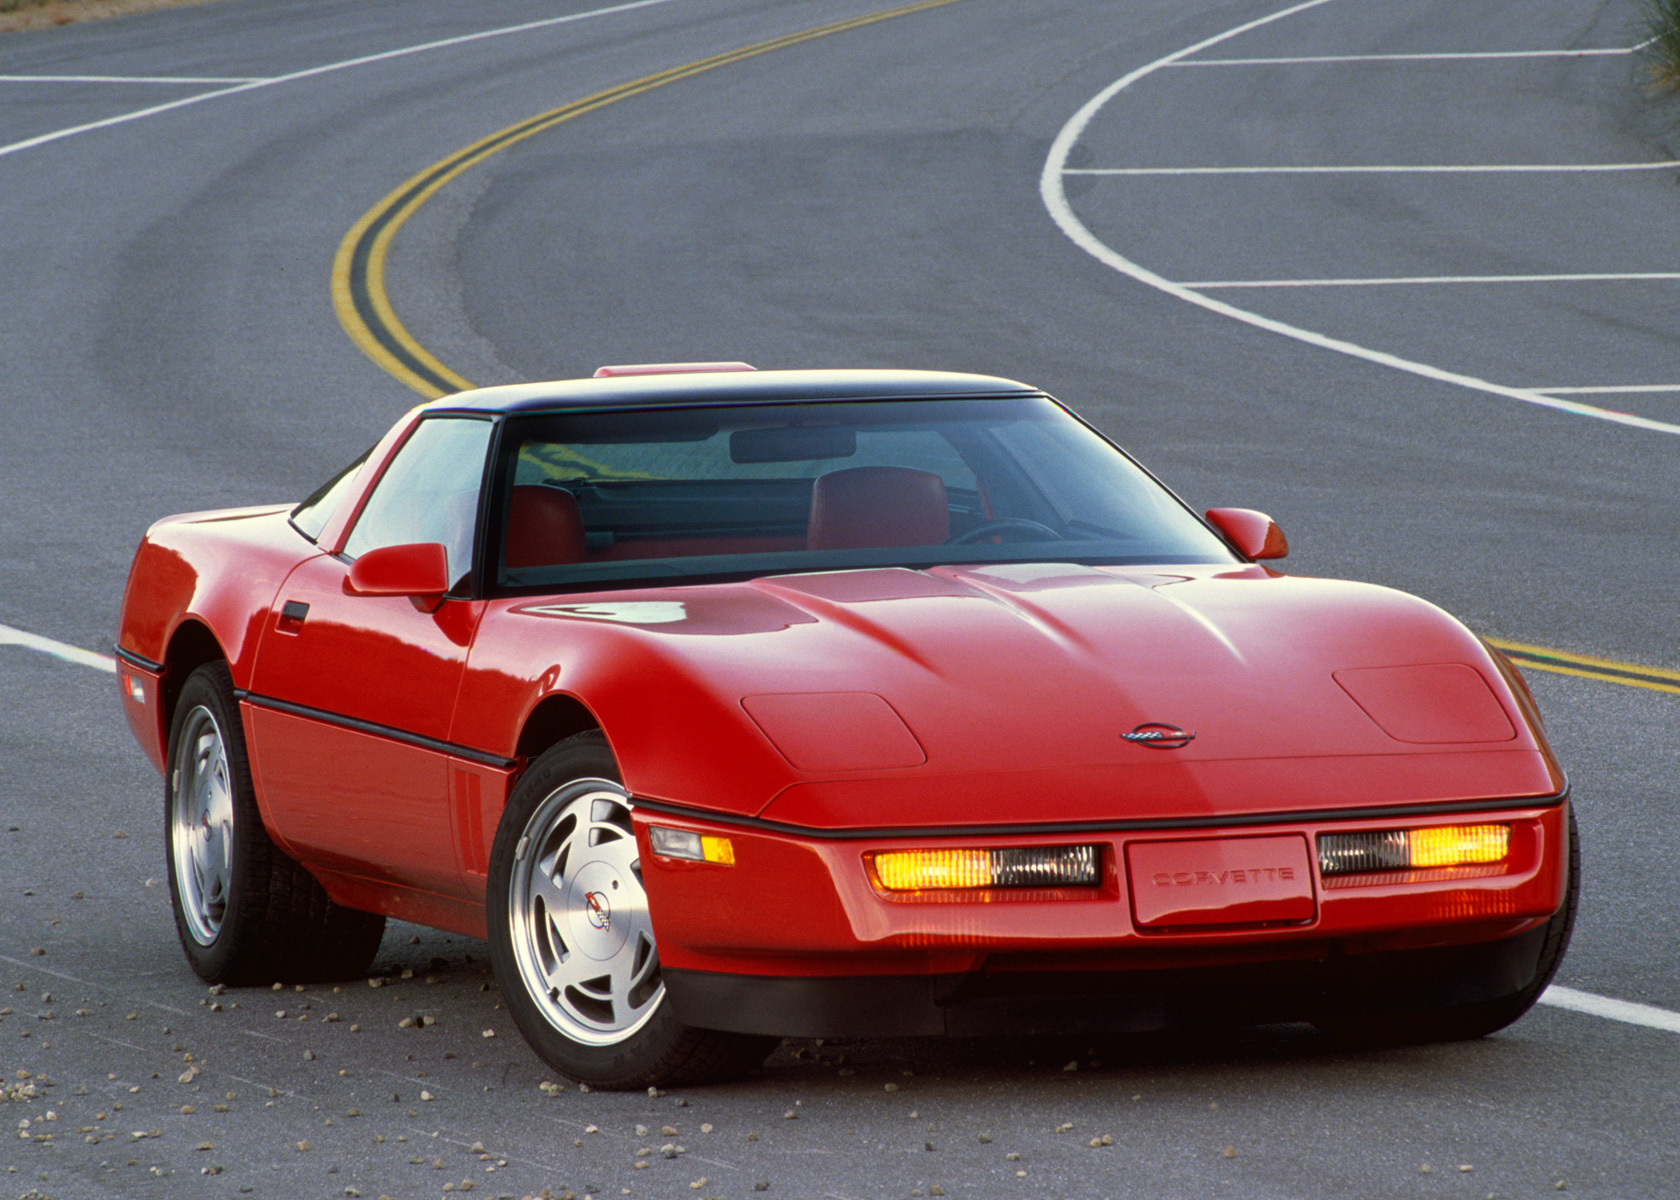 1990 Chevrolet Corvette ZR-1 red front 3/4